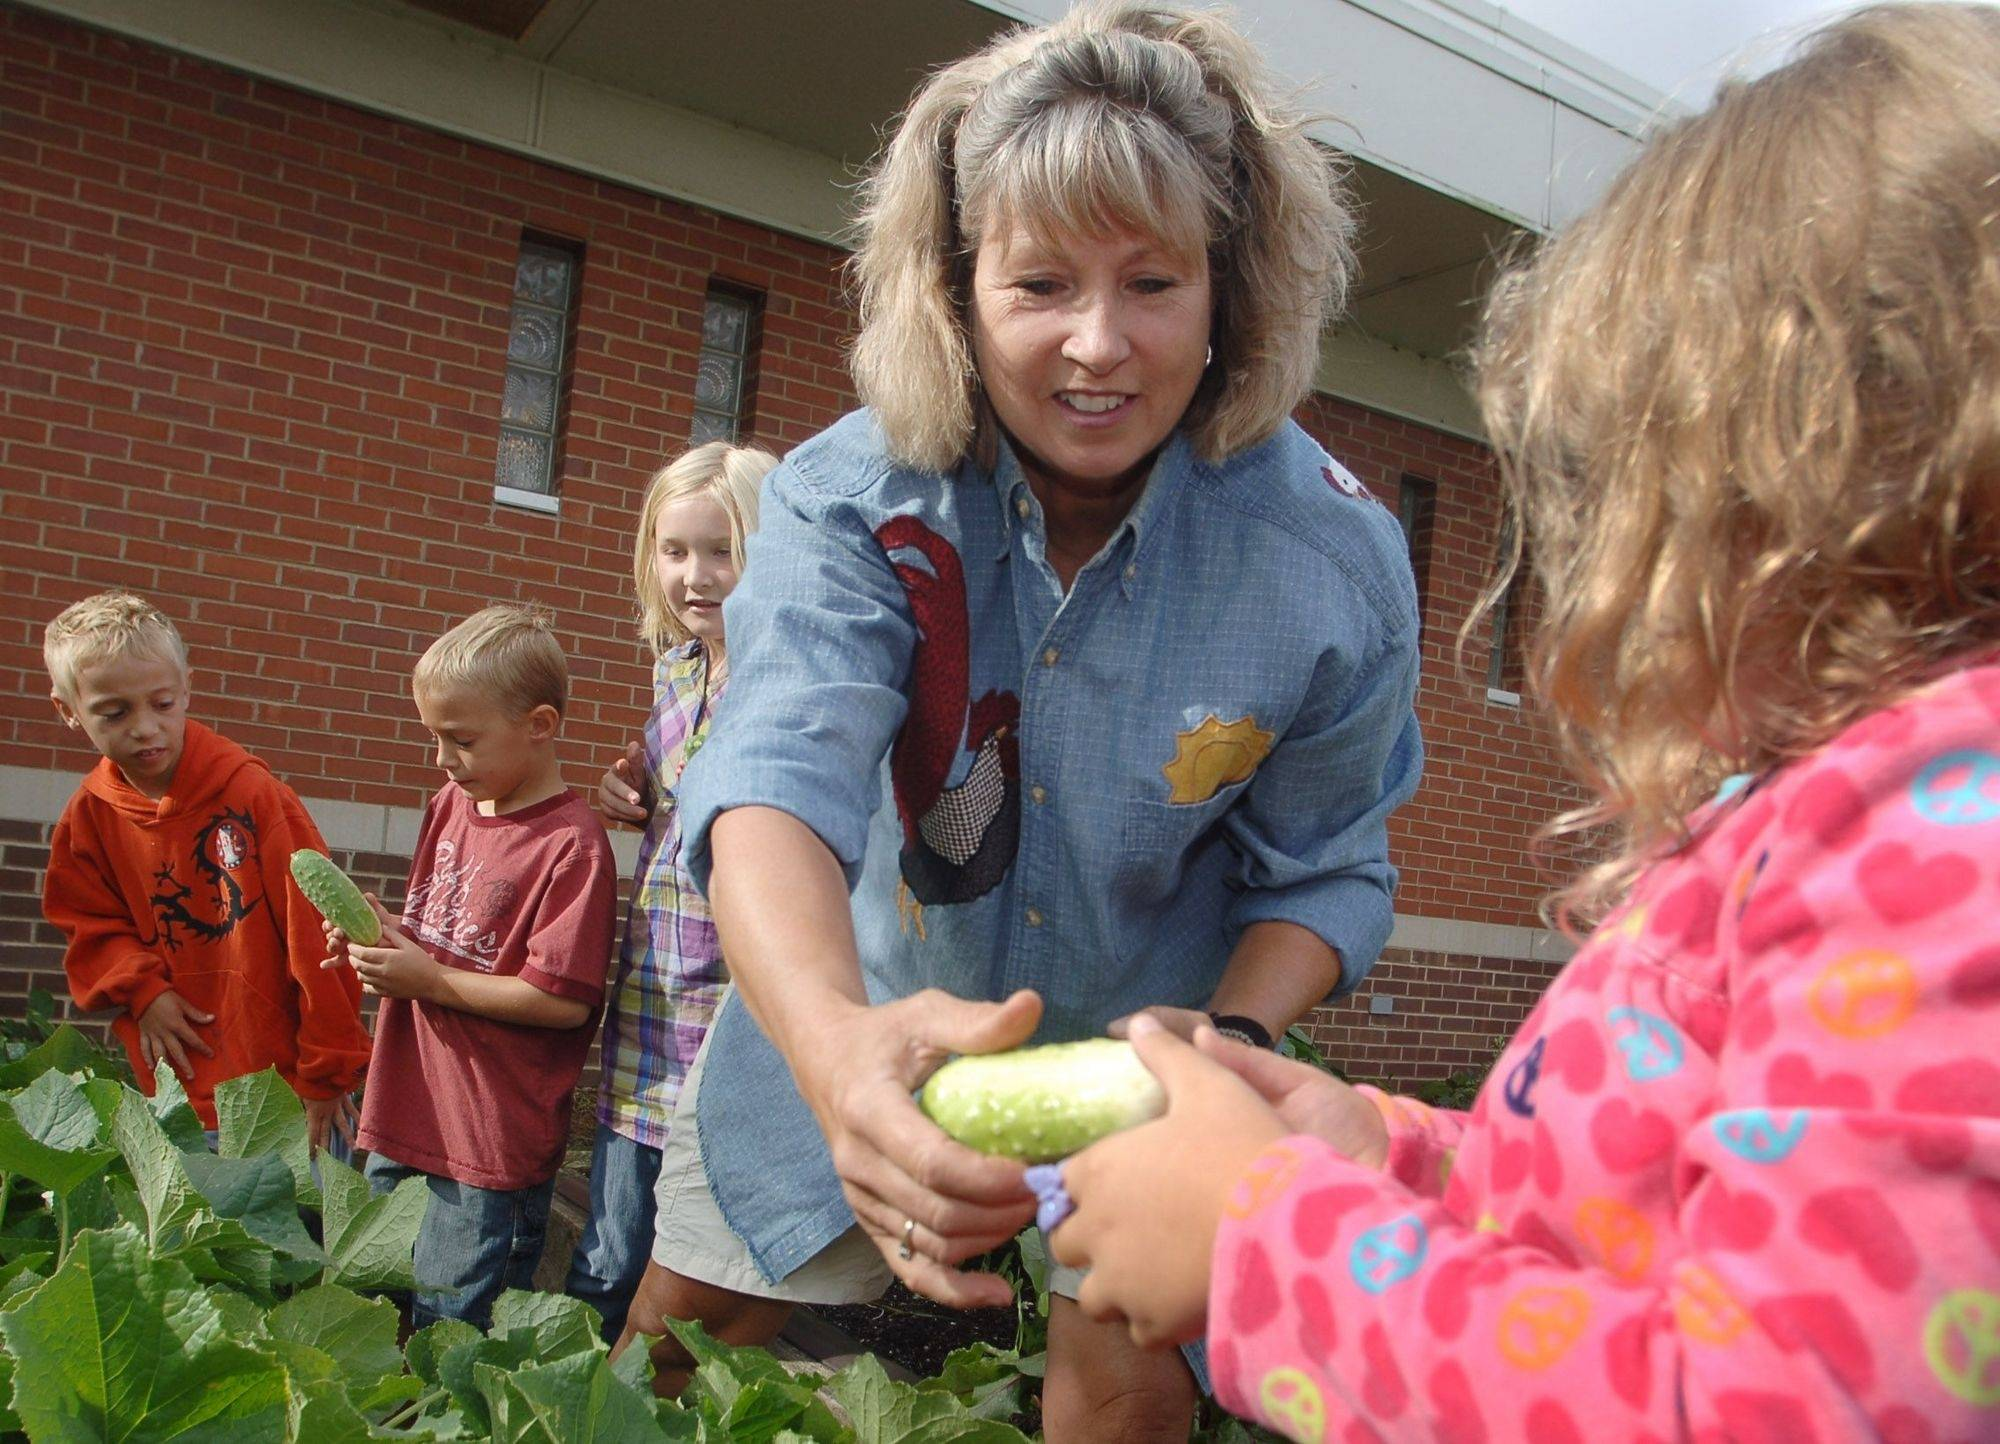 Kathy Reilly helps students pick cucumbers from one of the two courtyard gardens at Fremont Elementary School in Mundelein. Reilly heads up the garden program, which was developed through the Dist. 79 health and wellness committee.